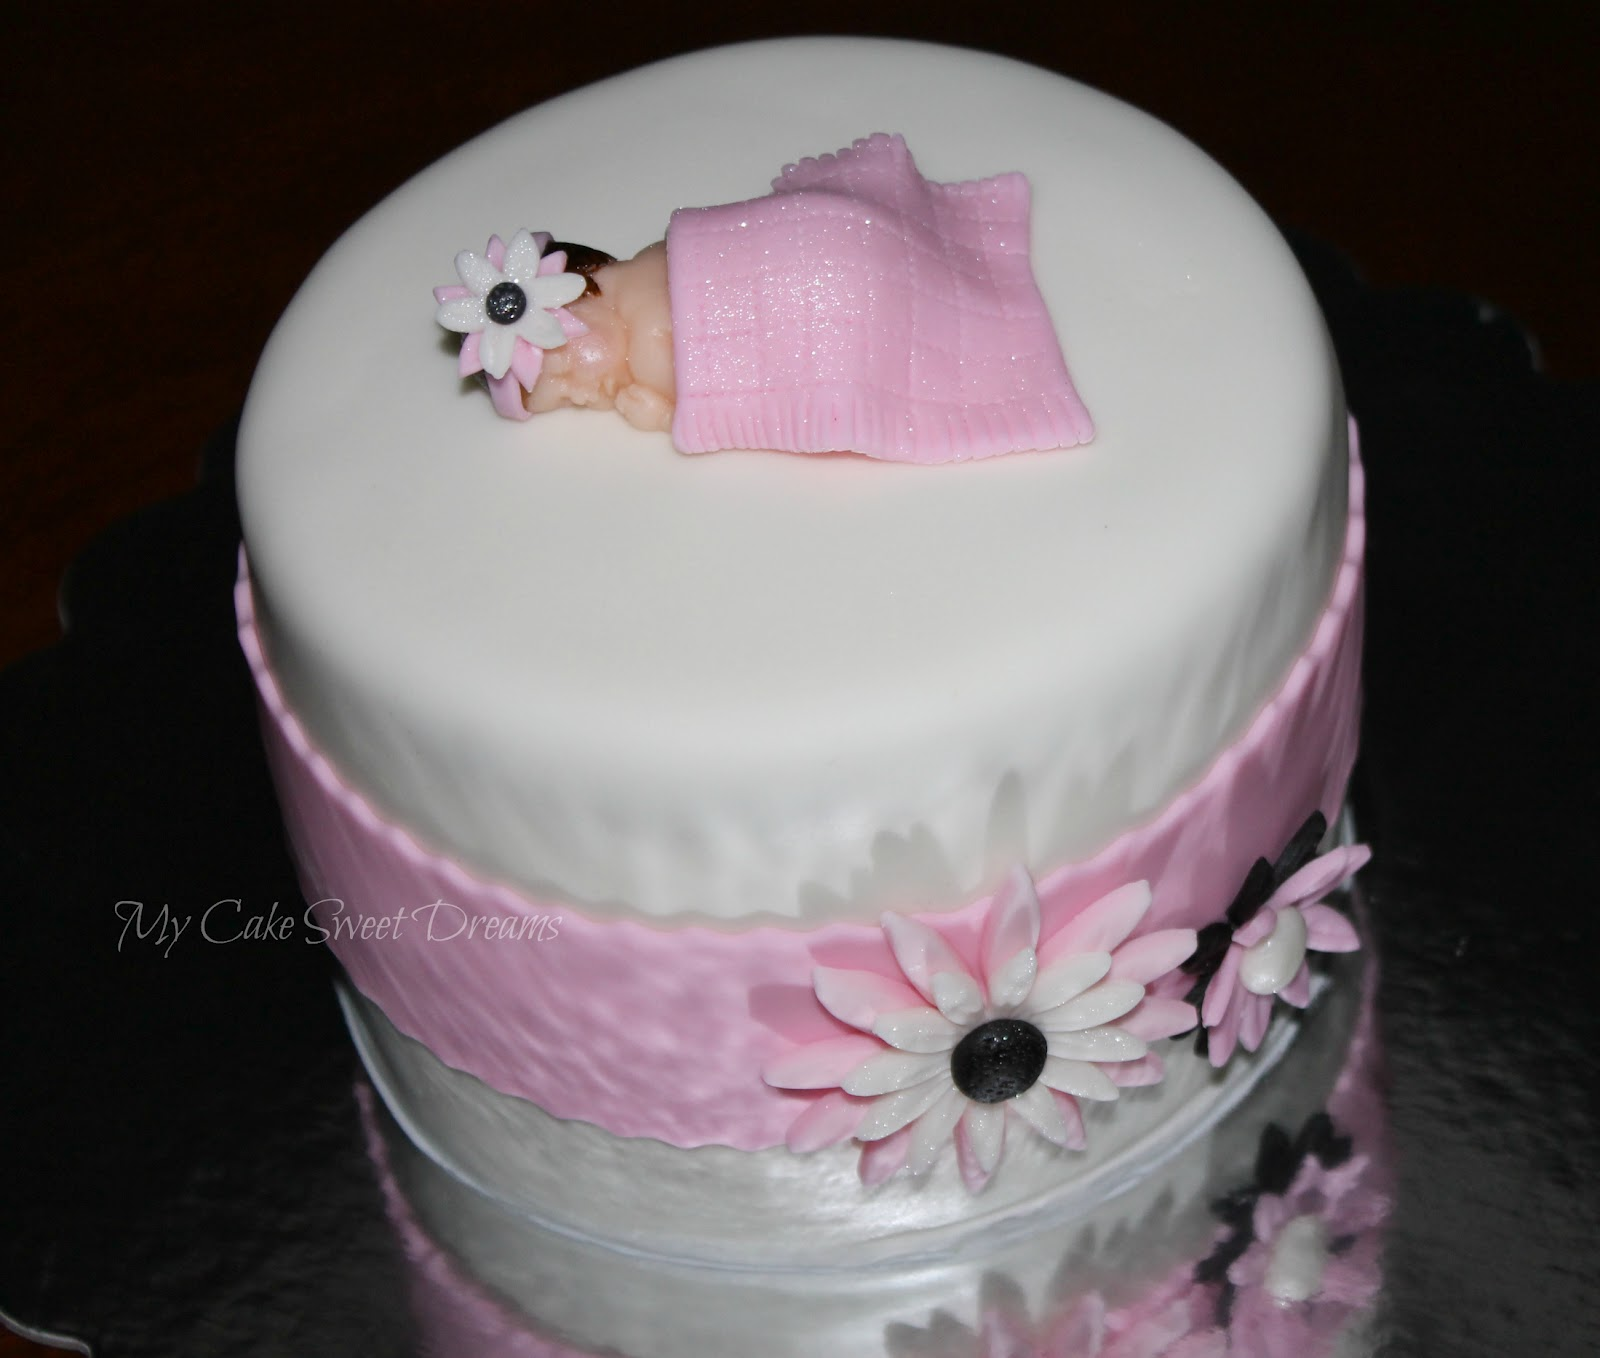 Cake Decorating Baby Shower Girl : My Cake Sweet Dreams: Baby Girl Shower Cake and Cupcakes